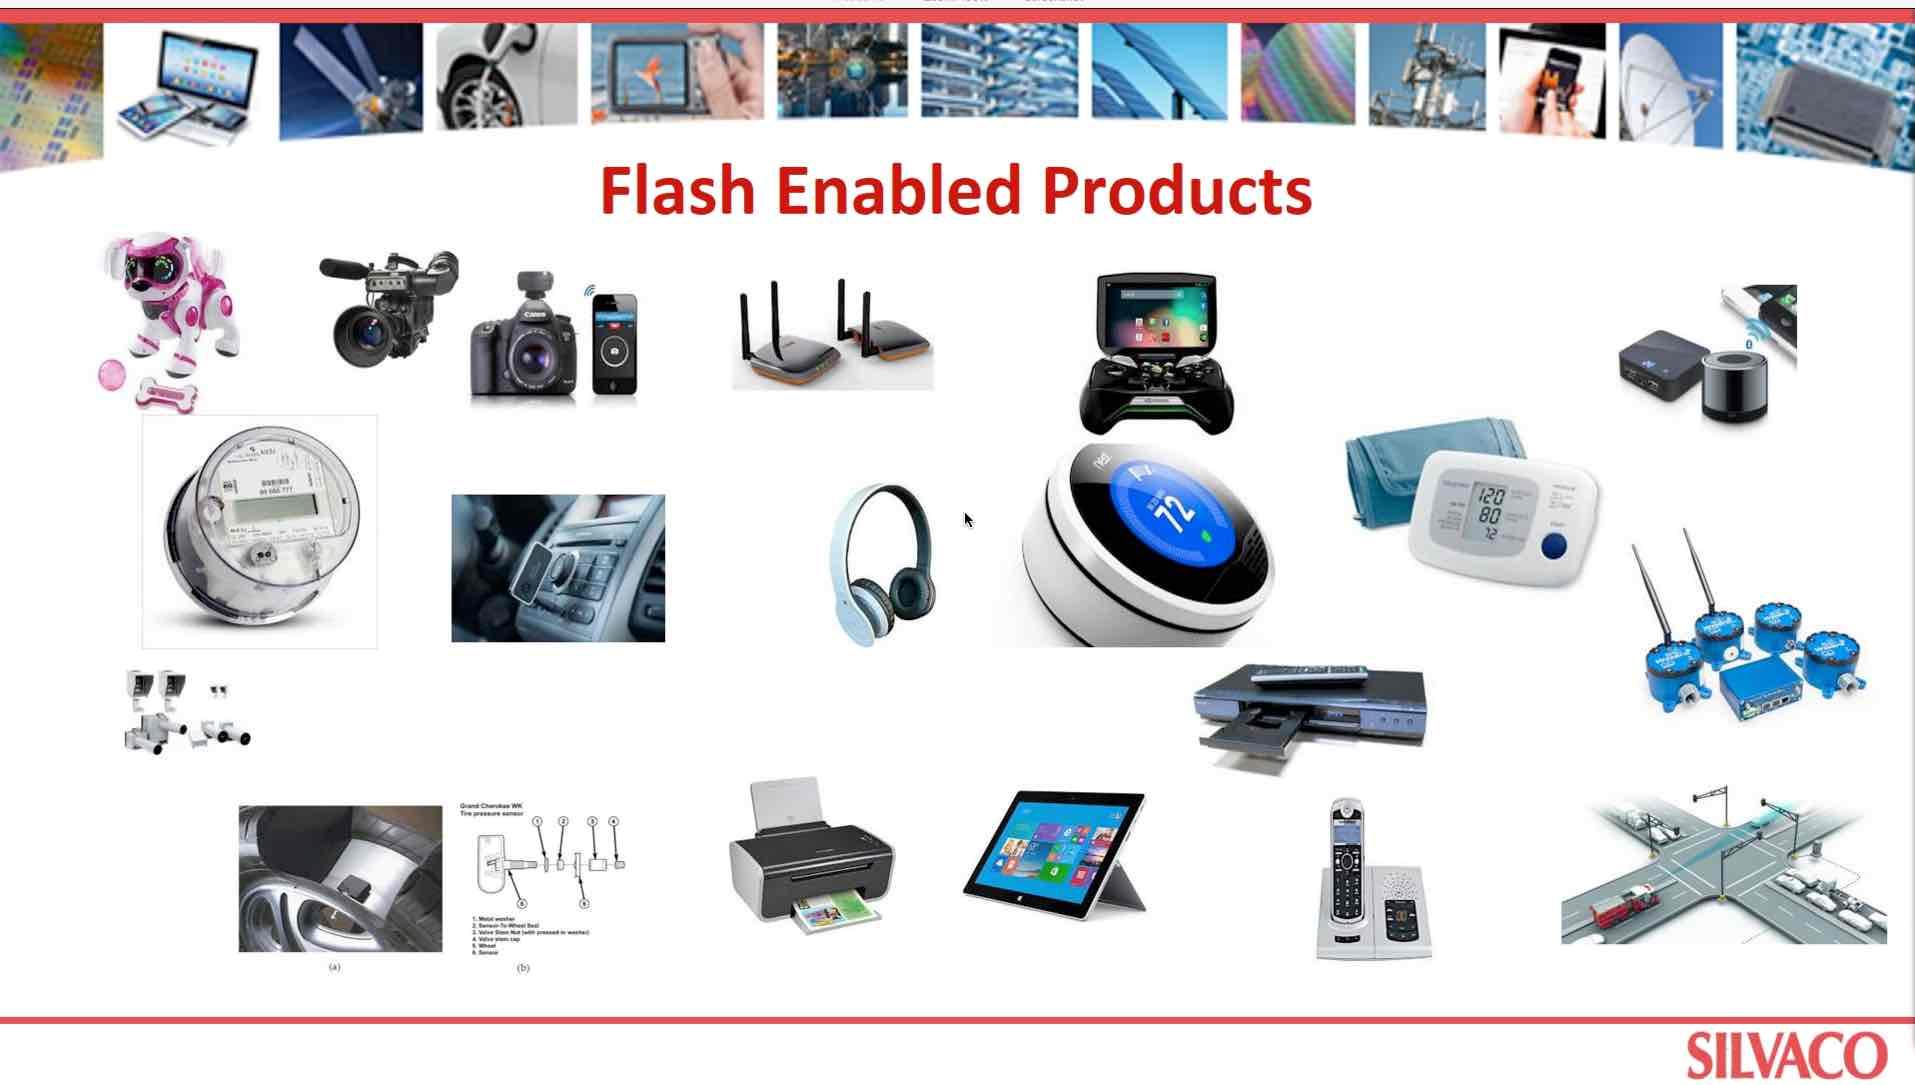 21146-flash-enabled-products-min.jpg